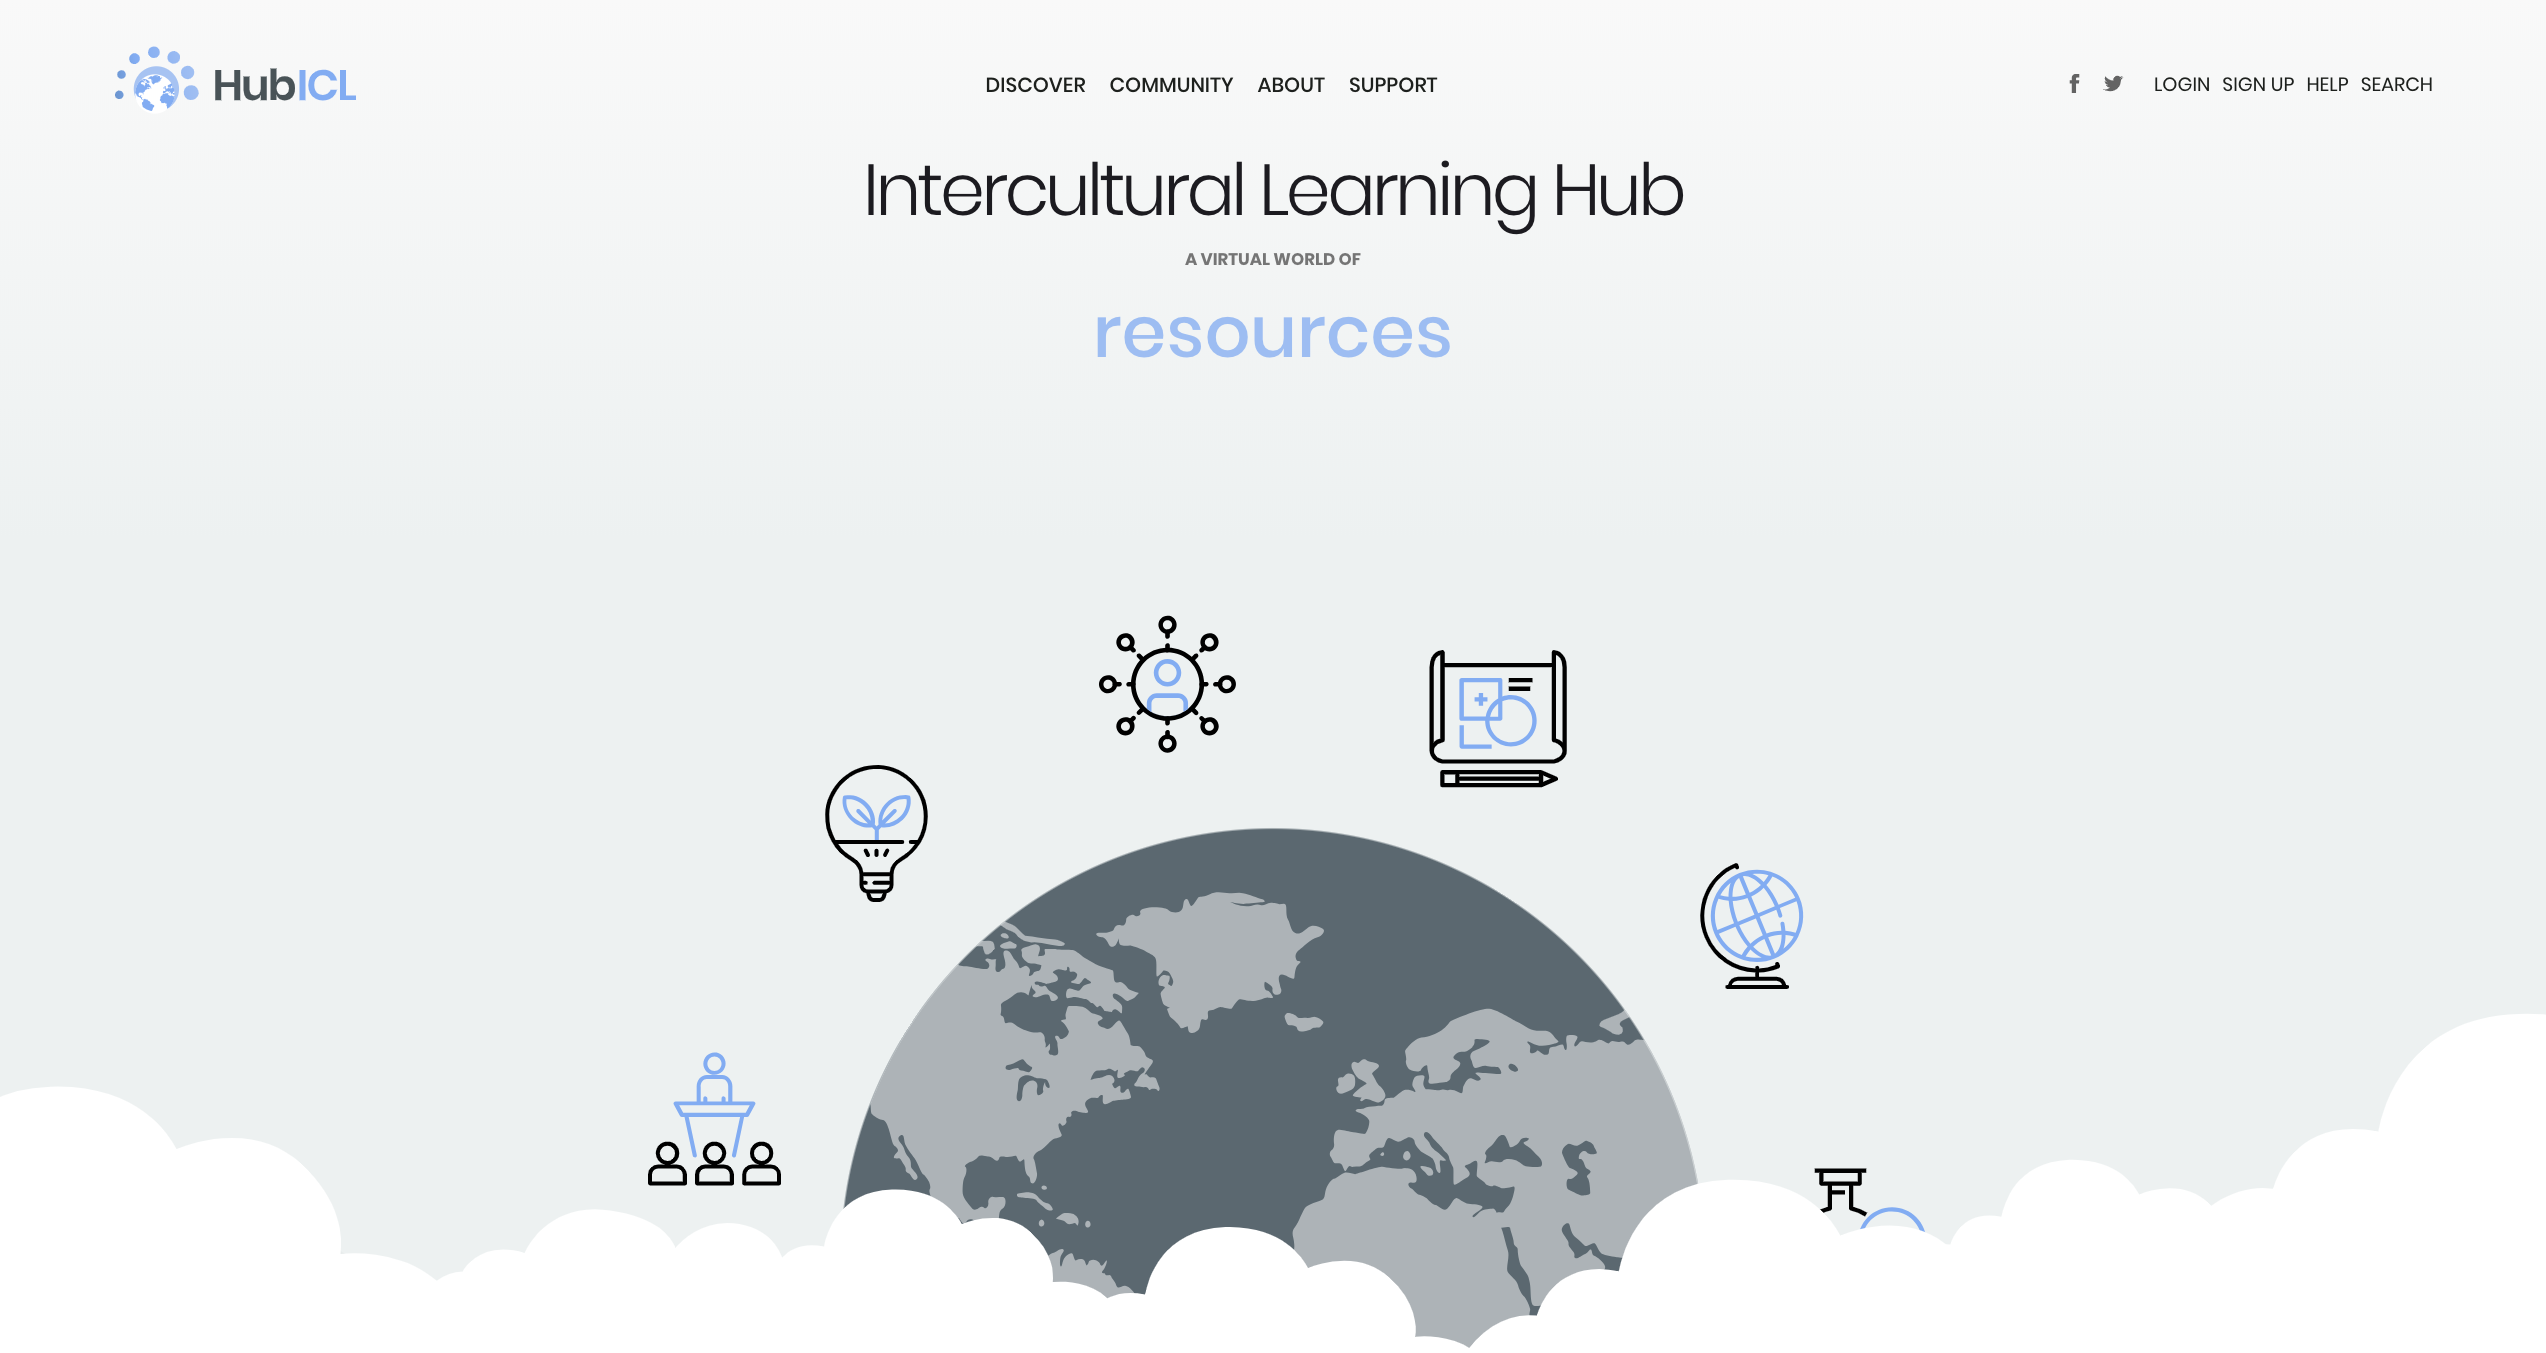 Intercultural Learning Hub